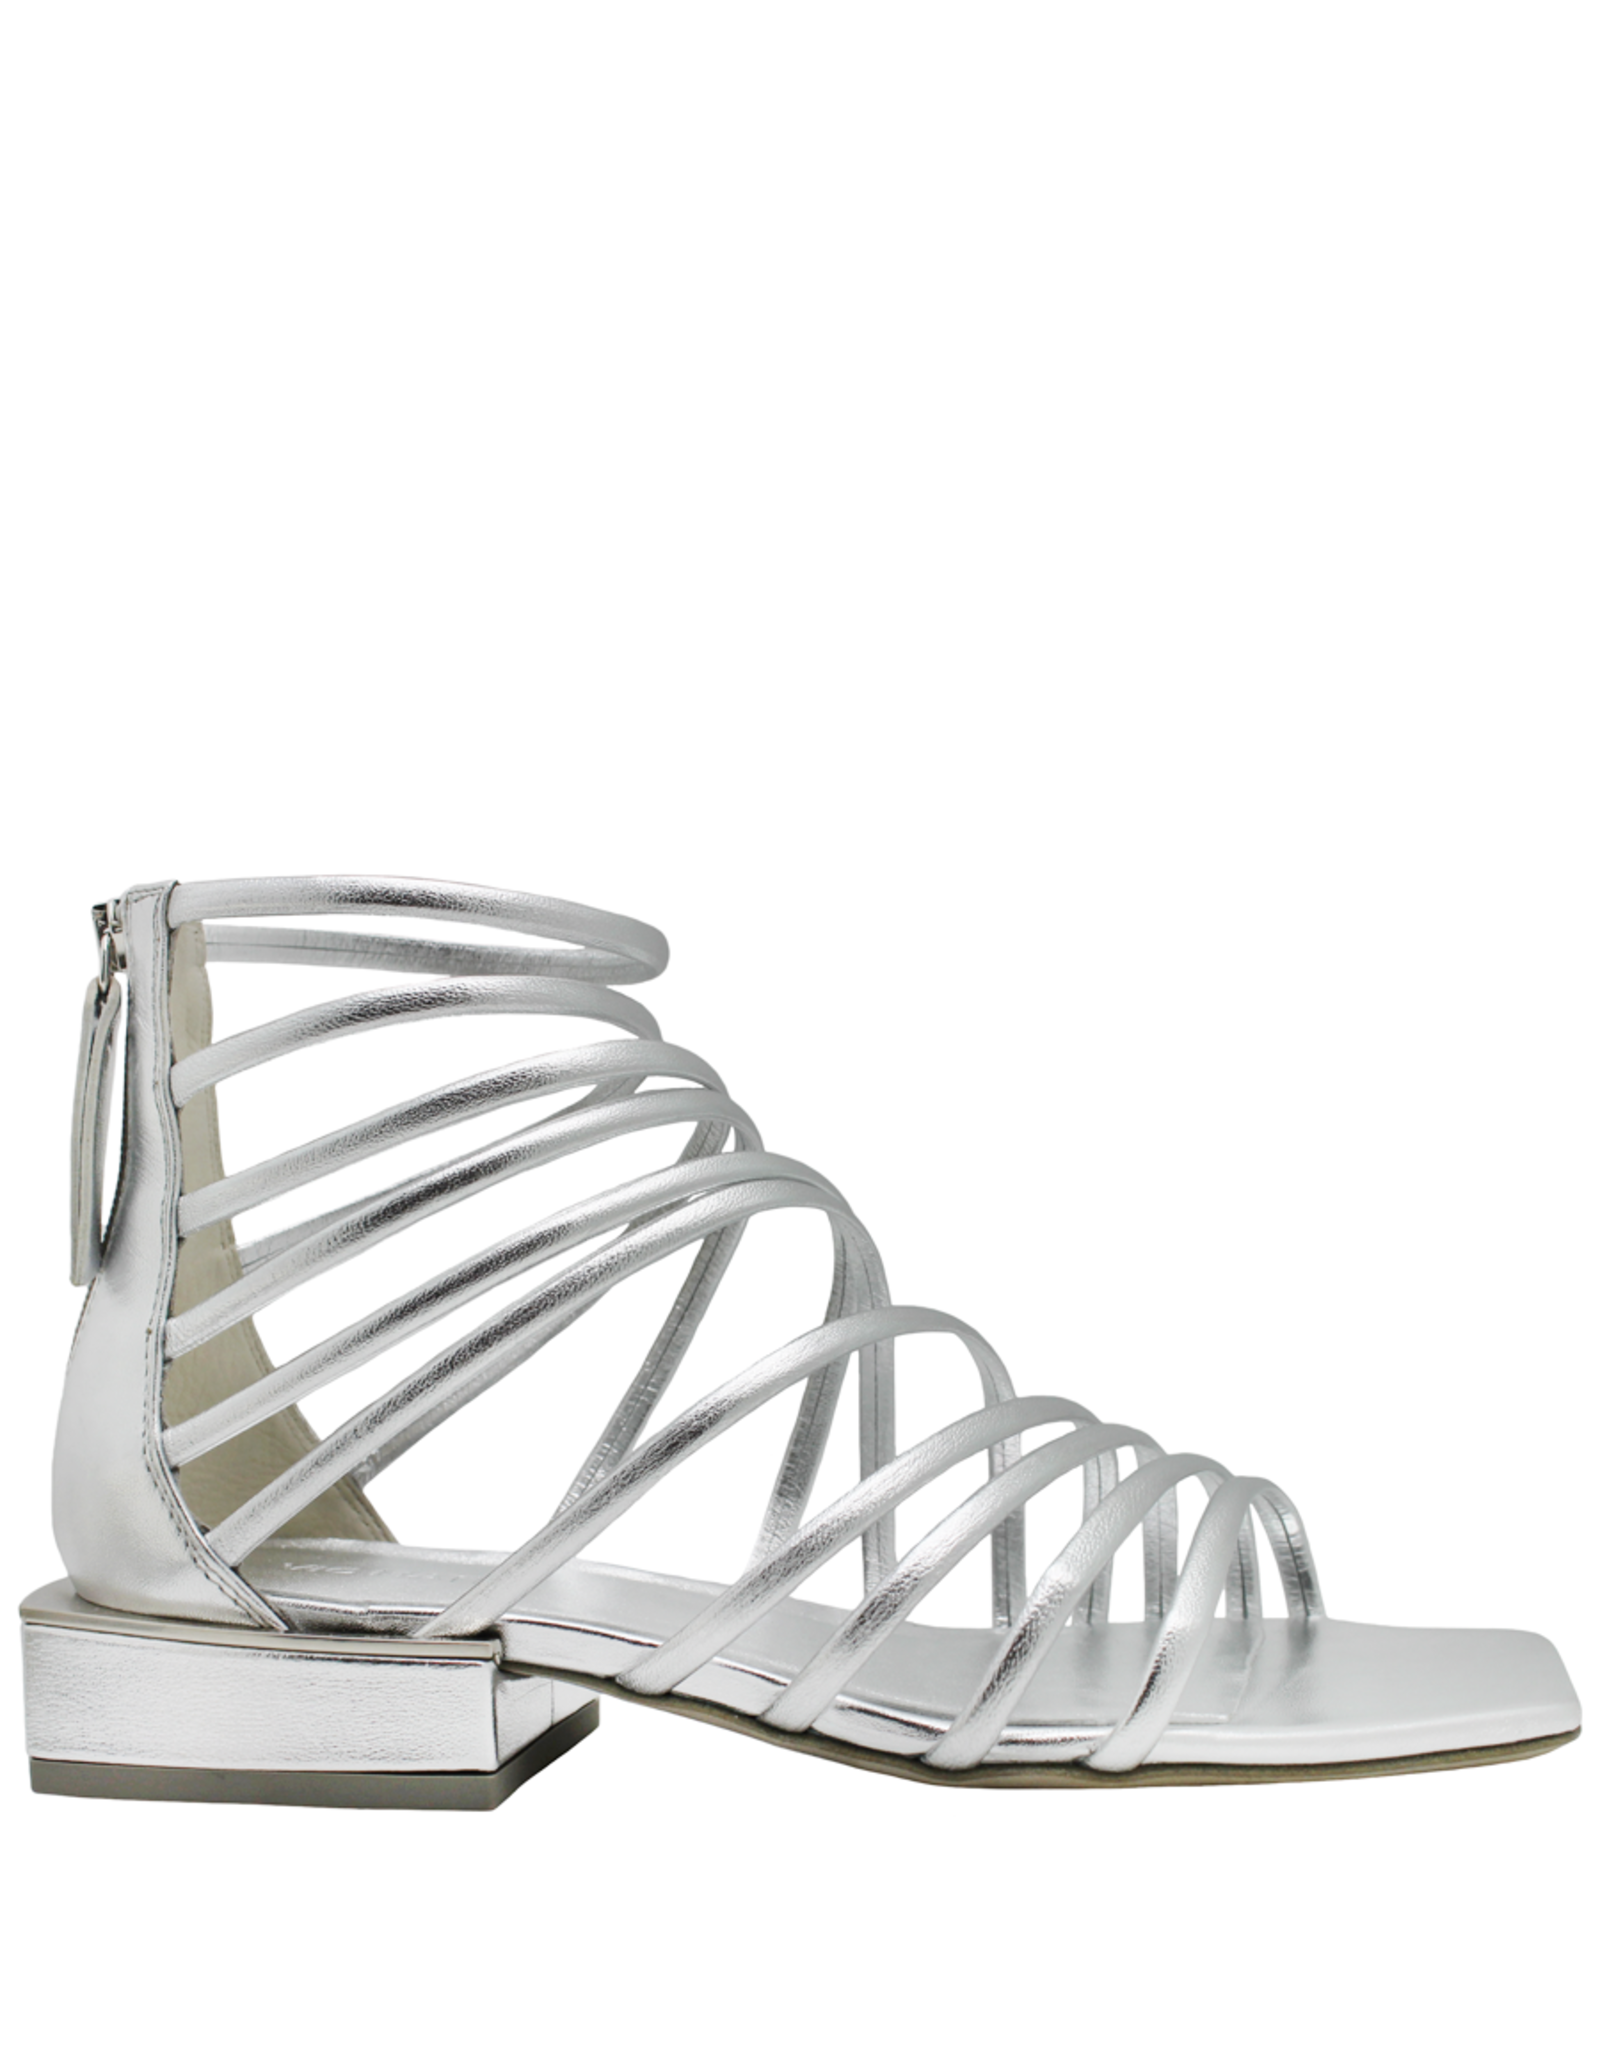 VicMatie VicMatie Silver Strappy Flat Sandal With Back Zipper 8722